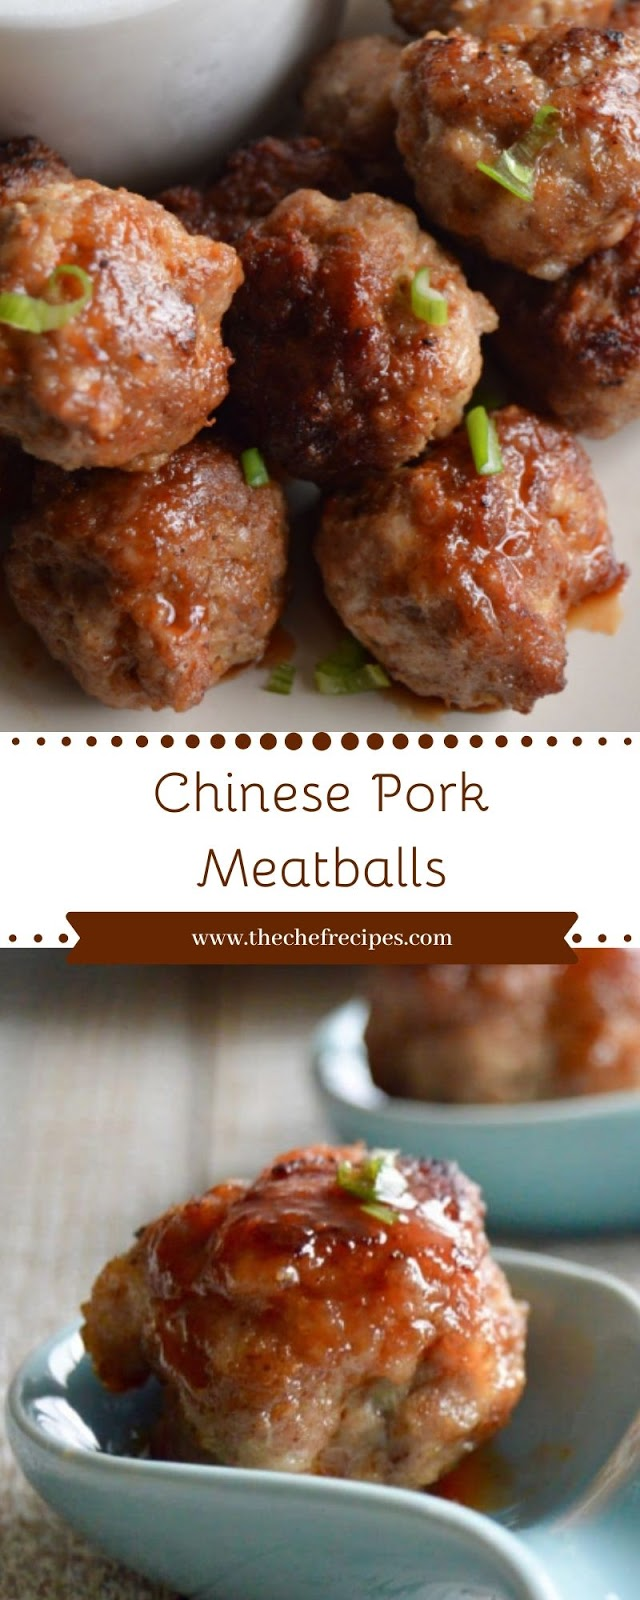 Chinese Pork Meatballs